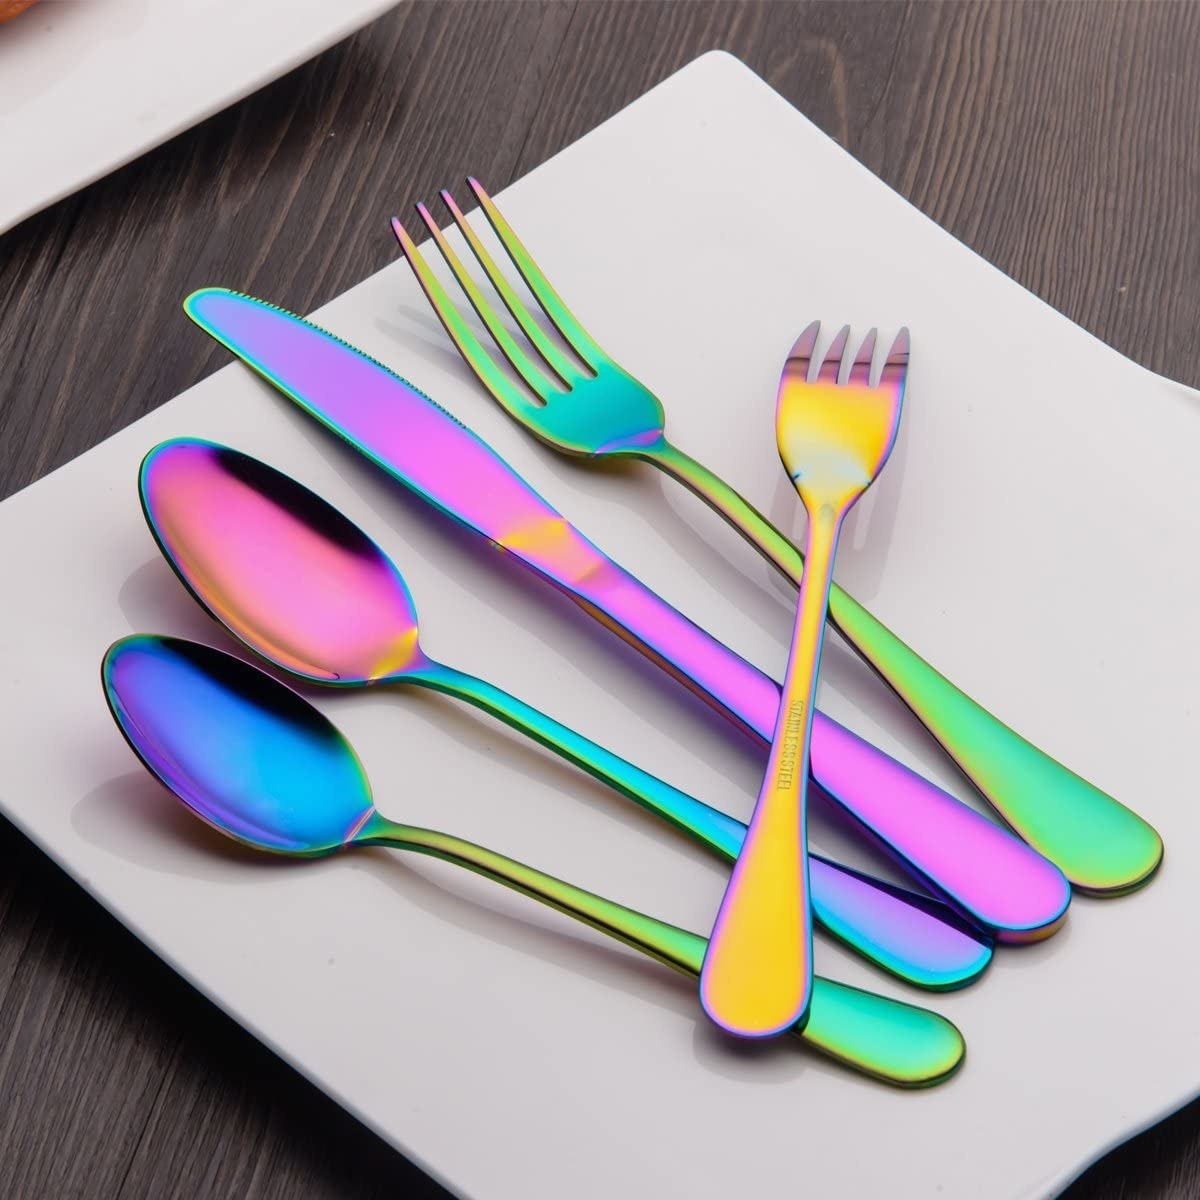 Rainbow tinted silverware on a plate